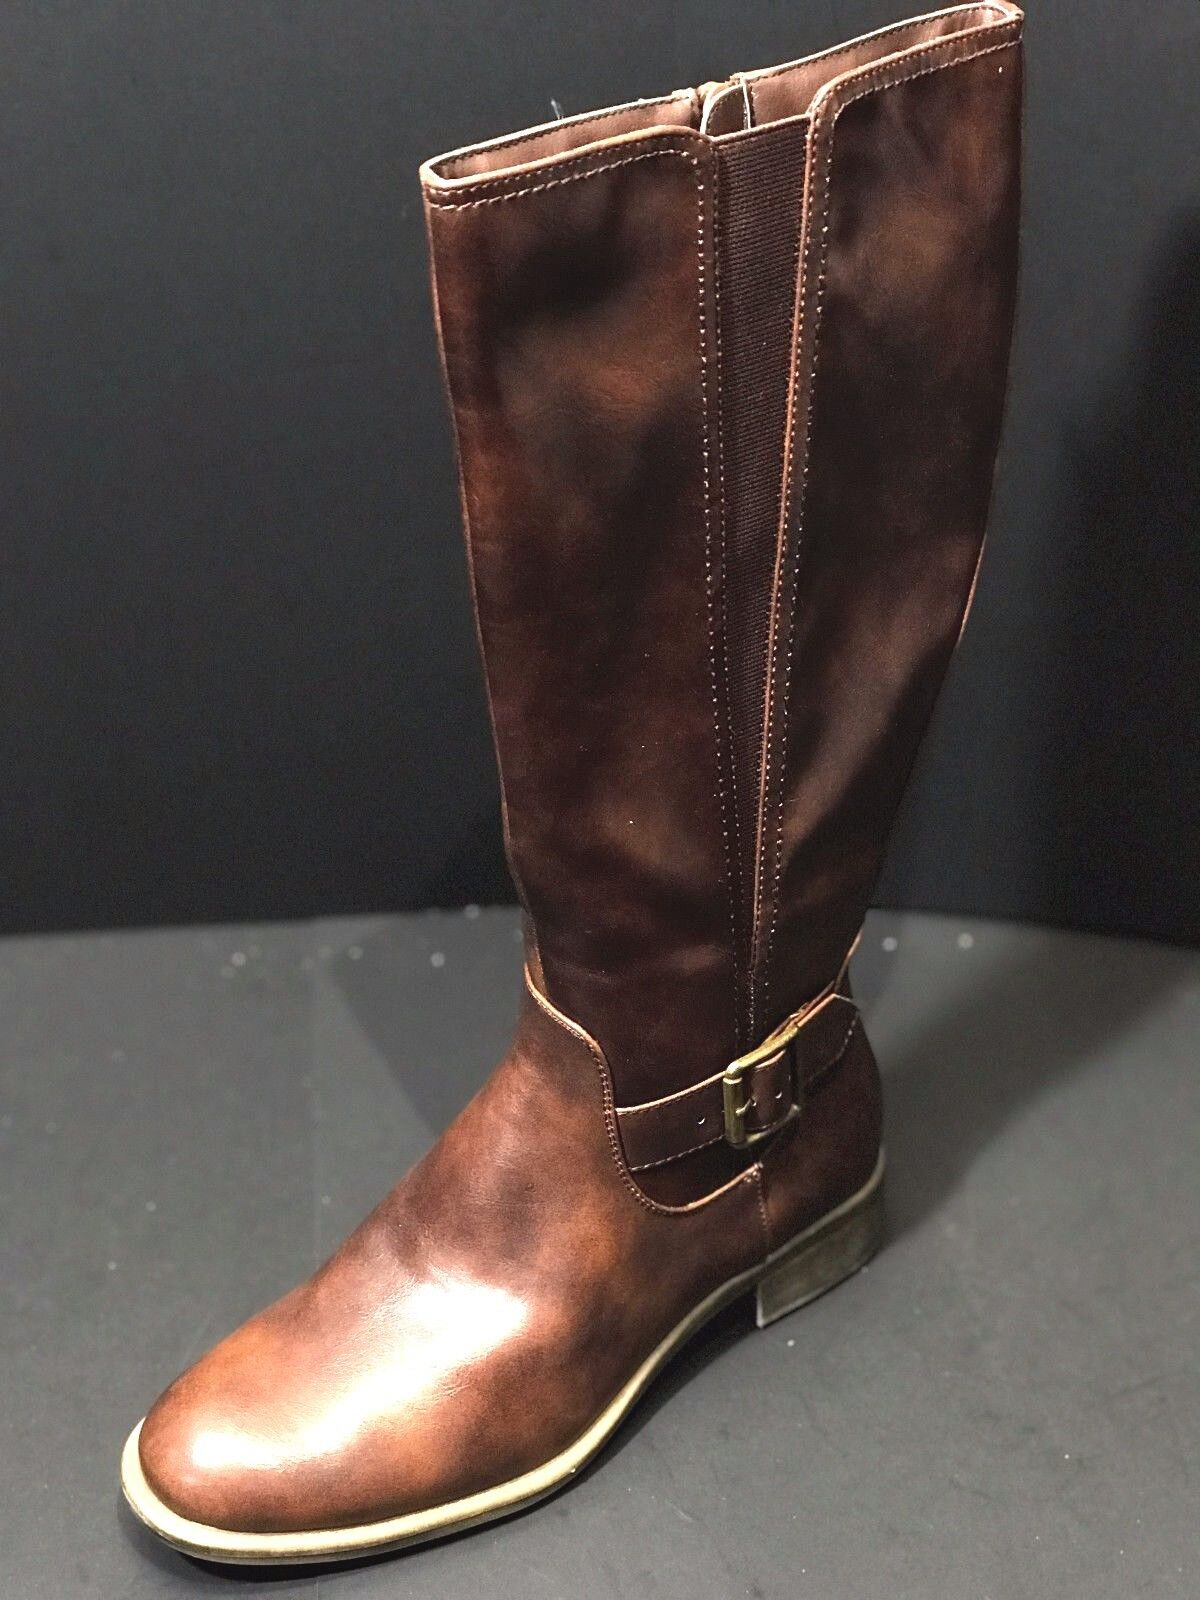 WEAR EVER WOMENS HIGH KNEE BOOT RICHIE WHISKEY BROWN MISMATCH SIZE L/7.5 R/6.5 M